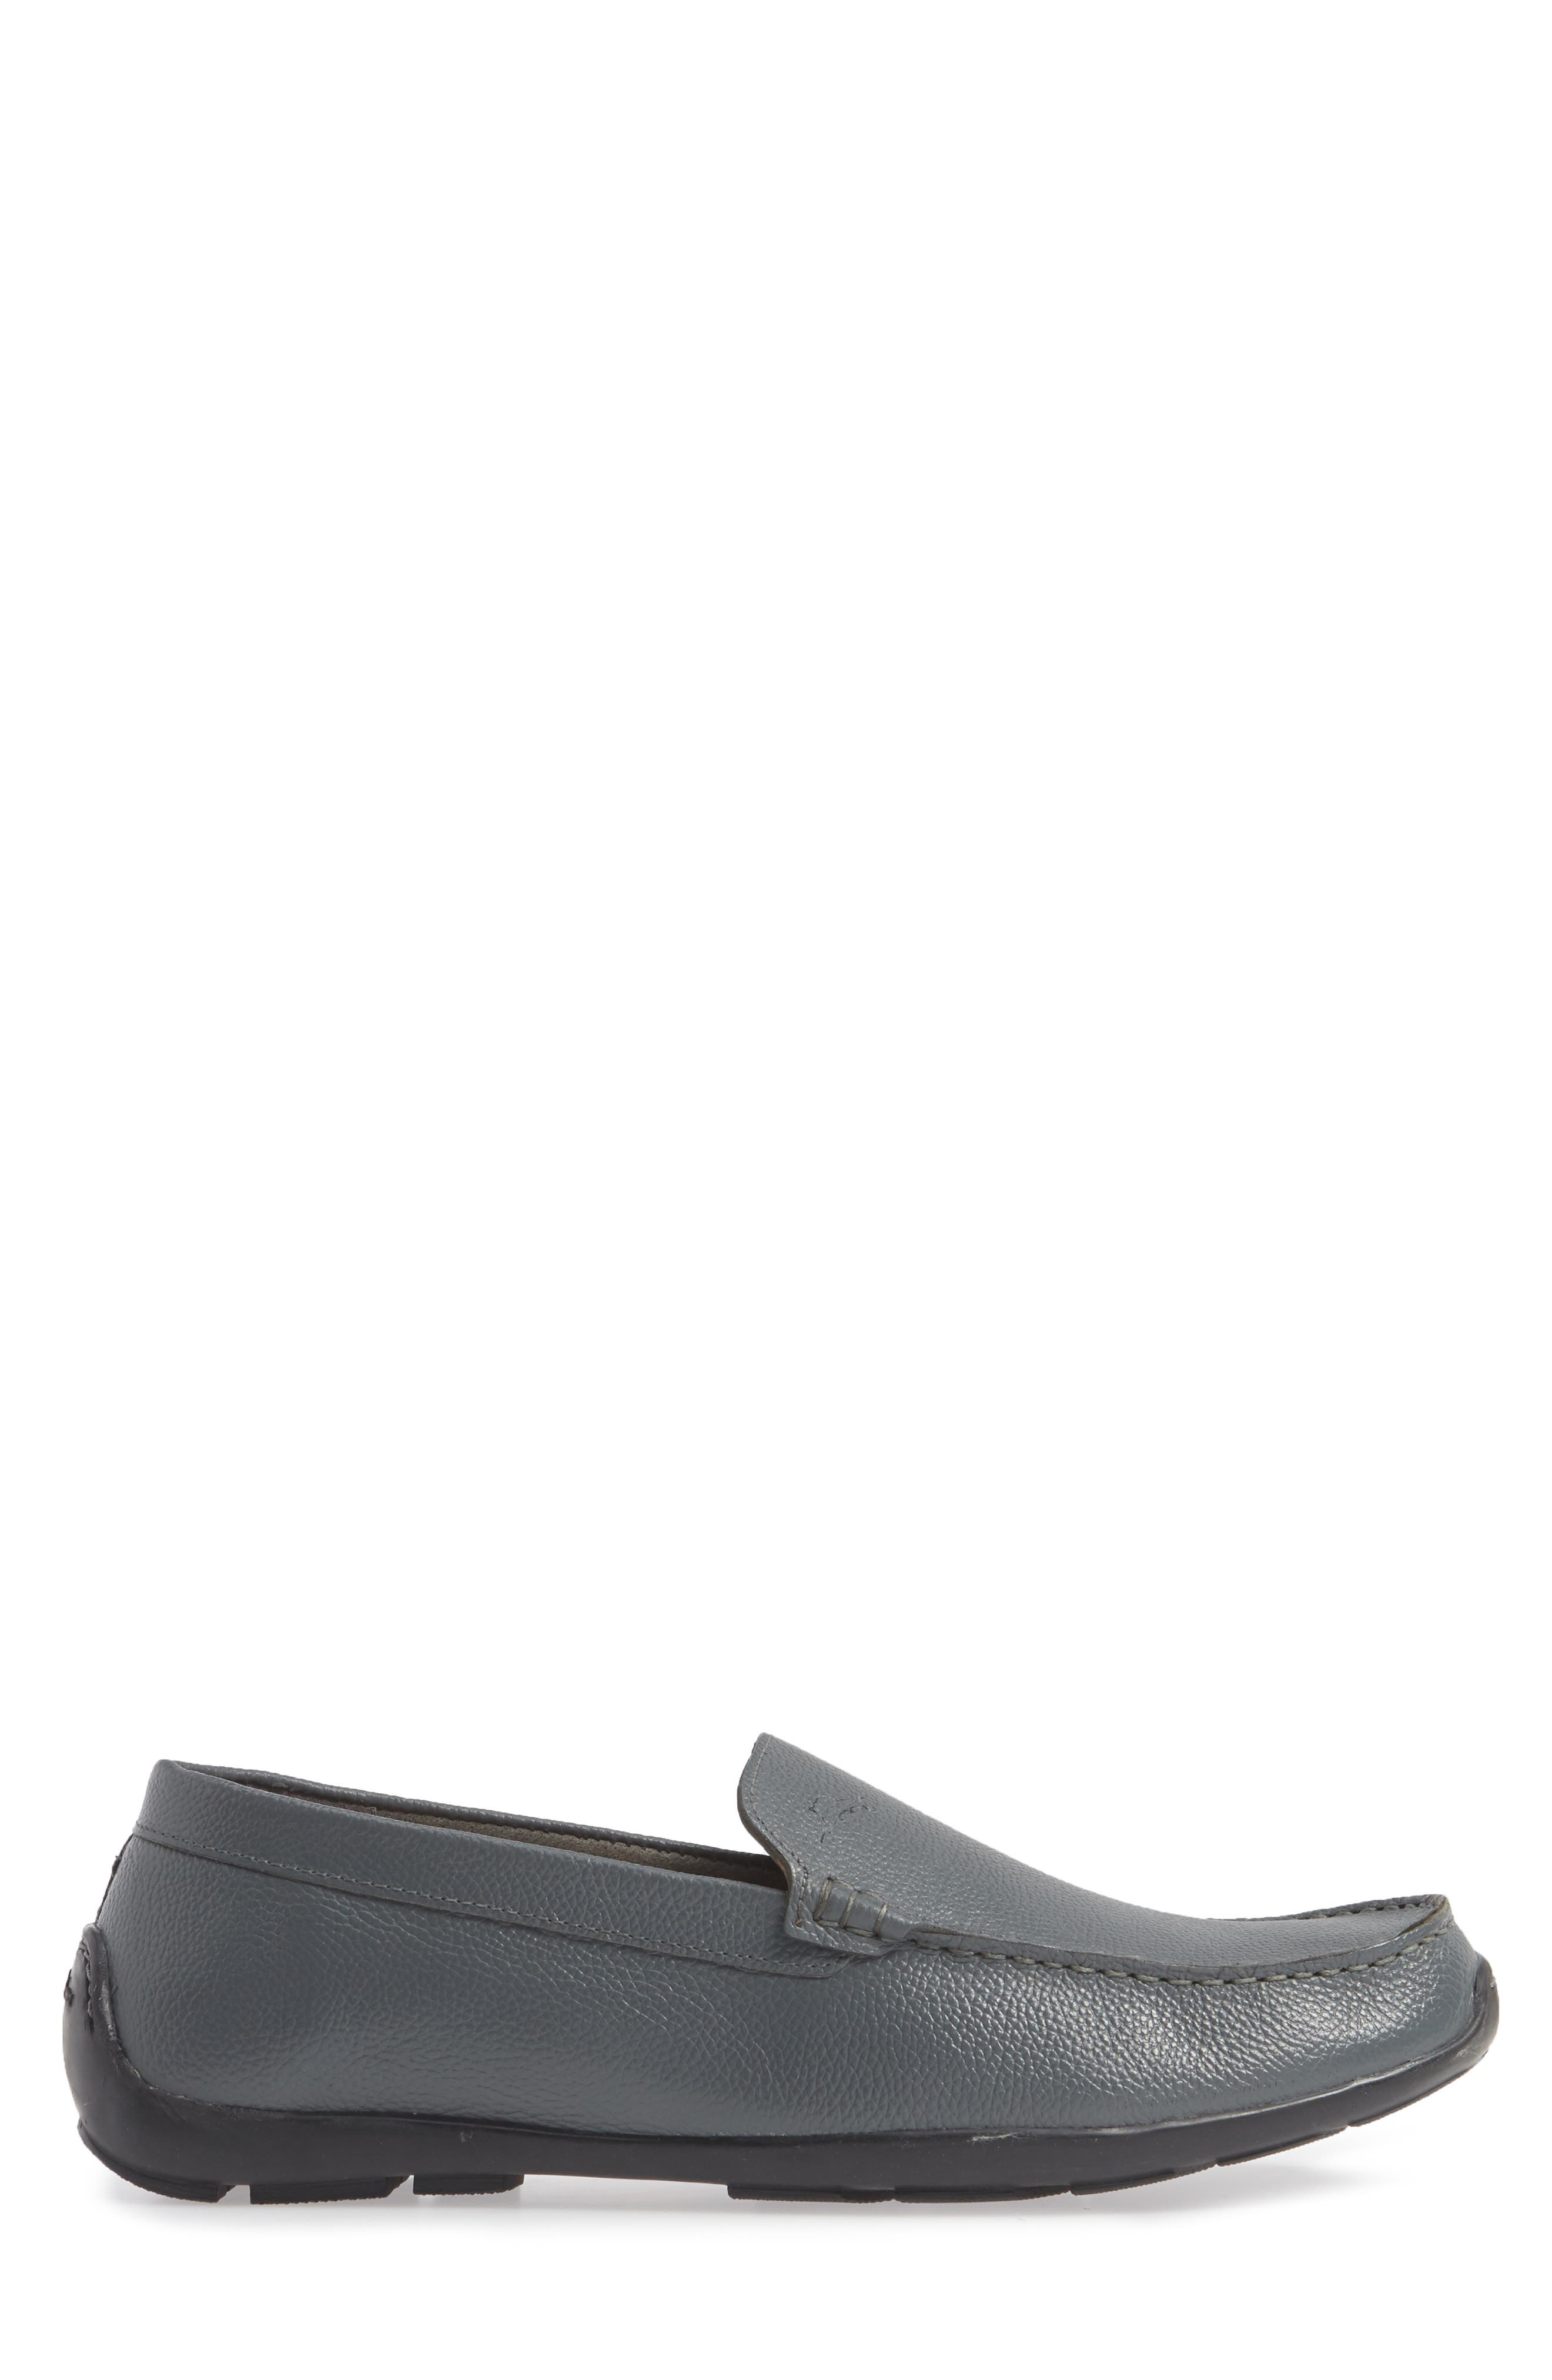 Orion Venetian Loafer,                             Alternate thumbnail 3, color,                             GREY TUMBLED LEATHER